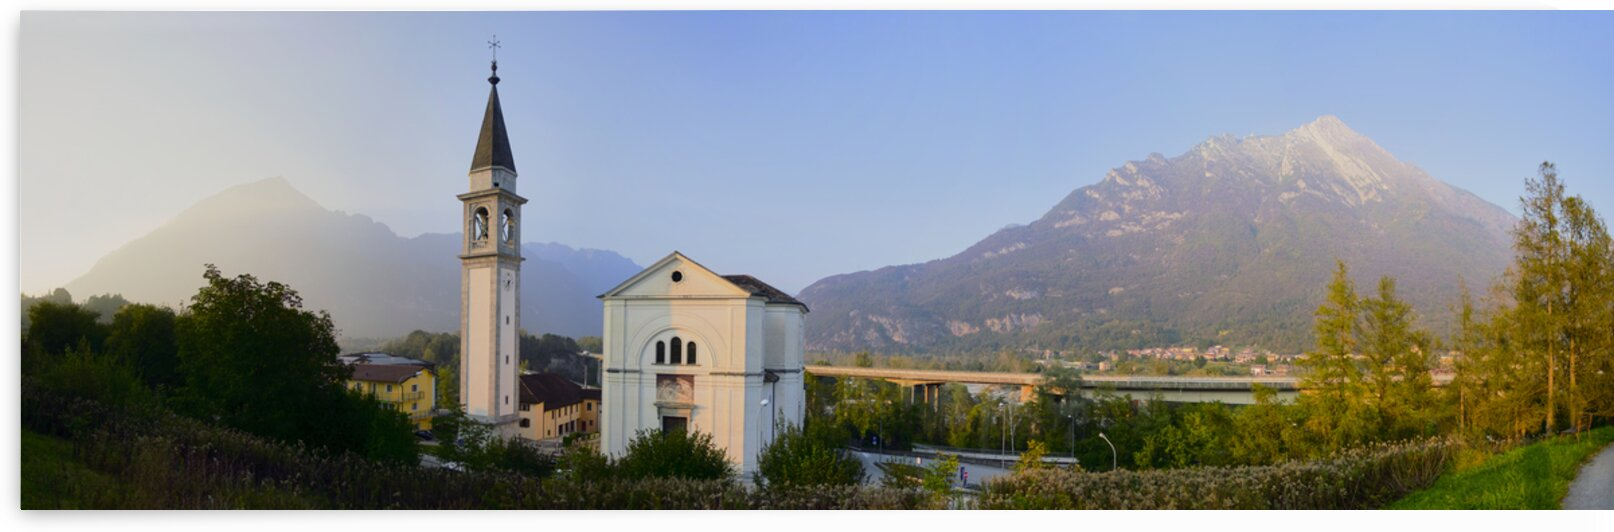 Panorama of church in northern italian village Belluno Italy Europe by Atelier Knox